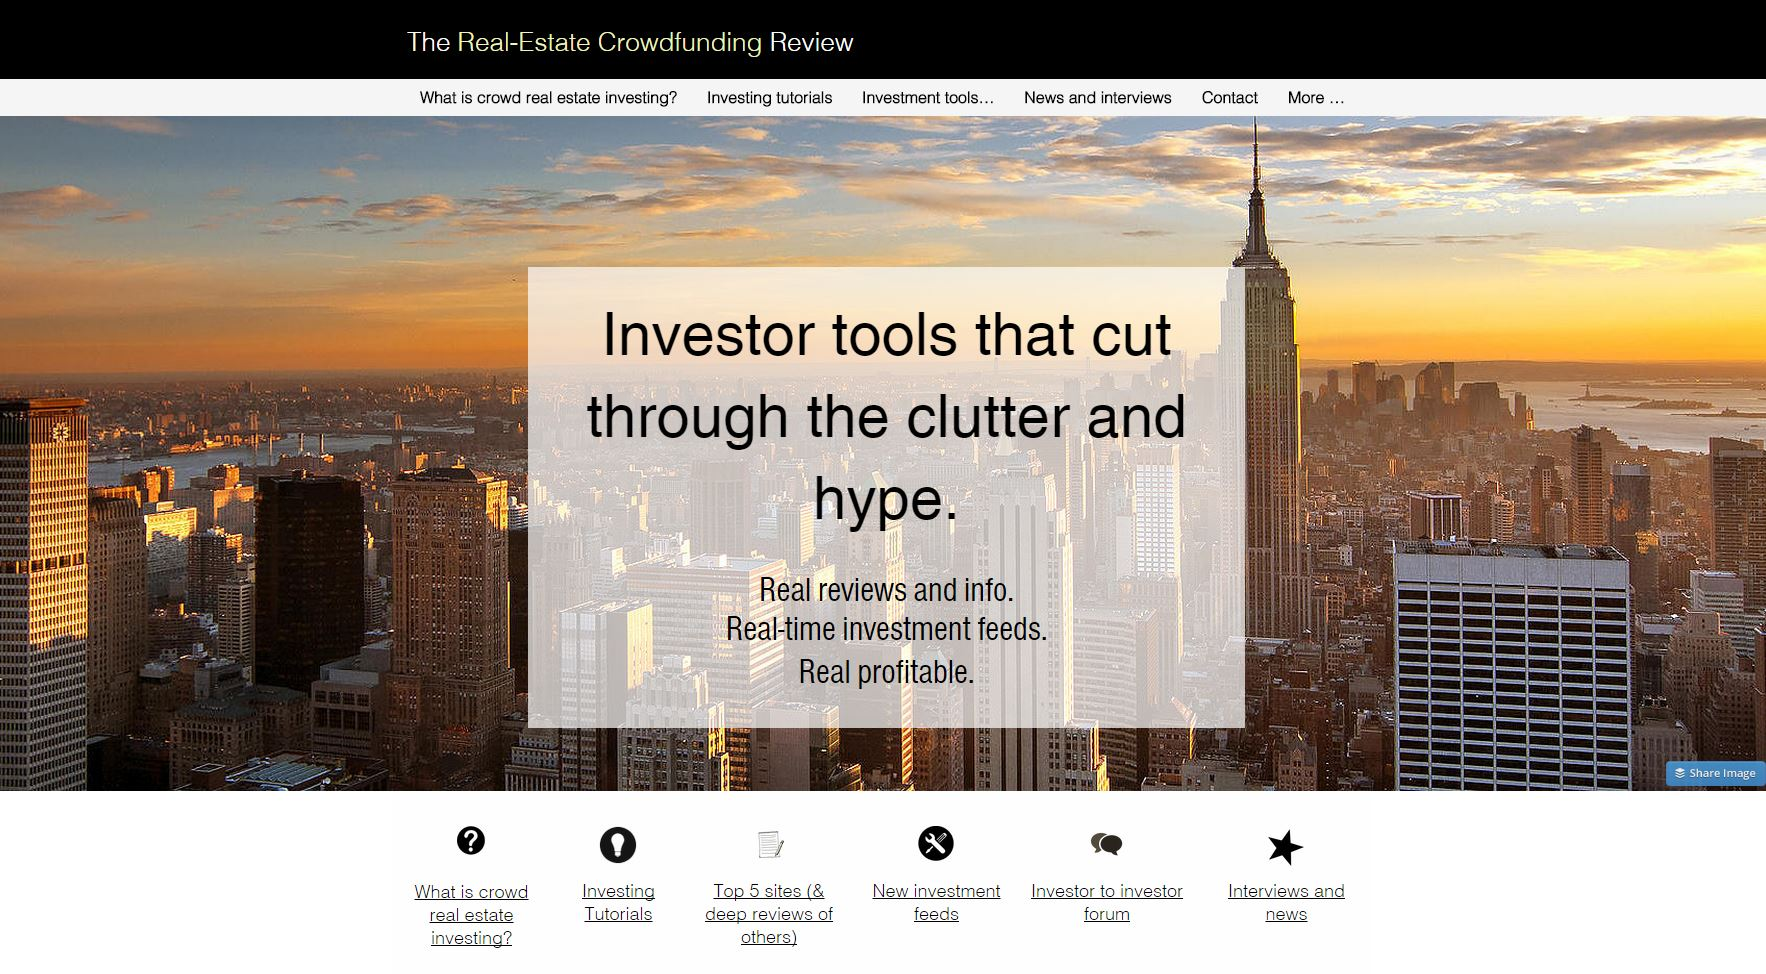 Real estate crowdfunding review screenshot